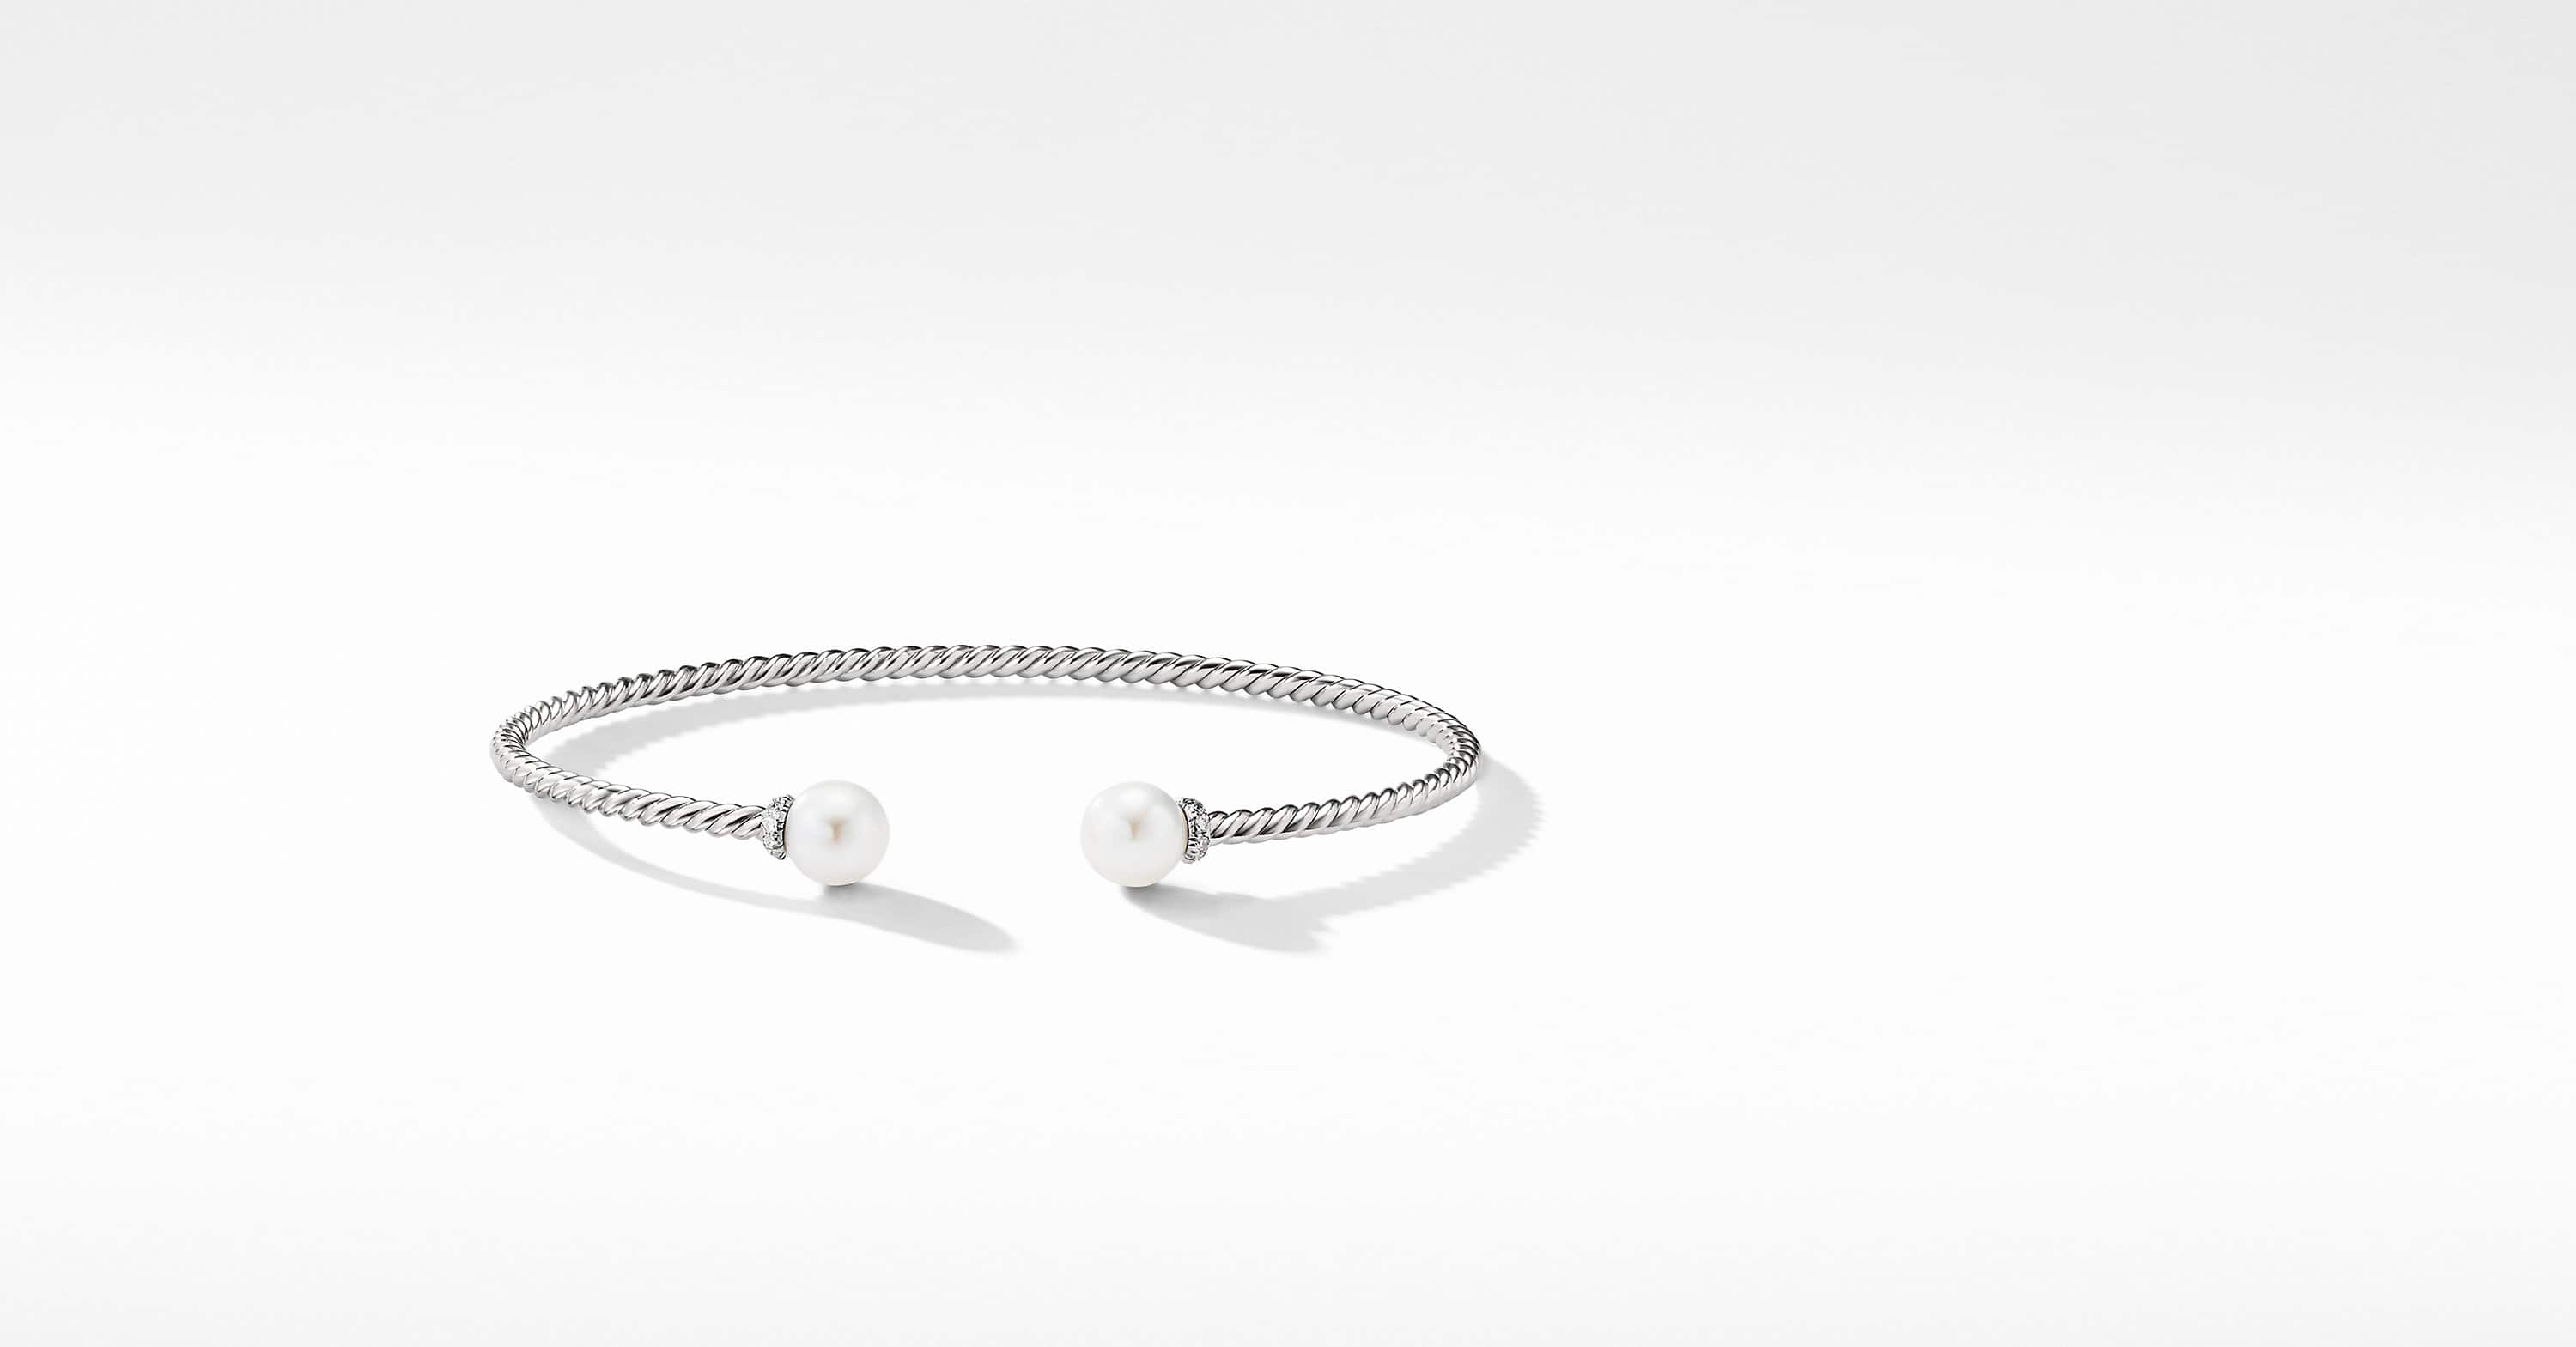 Petite Solari Pearl Bracelet in 18K White Gold with Diamonds